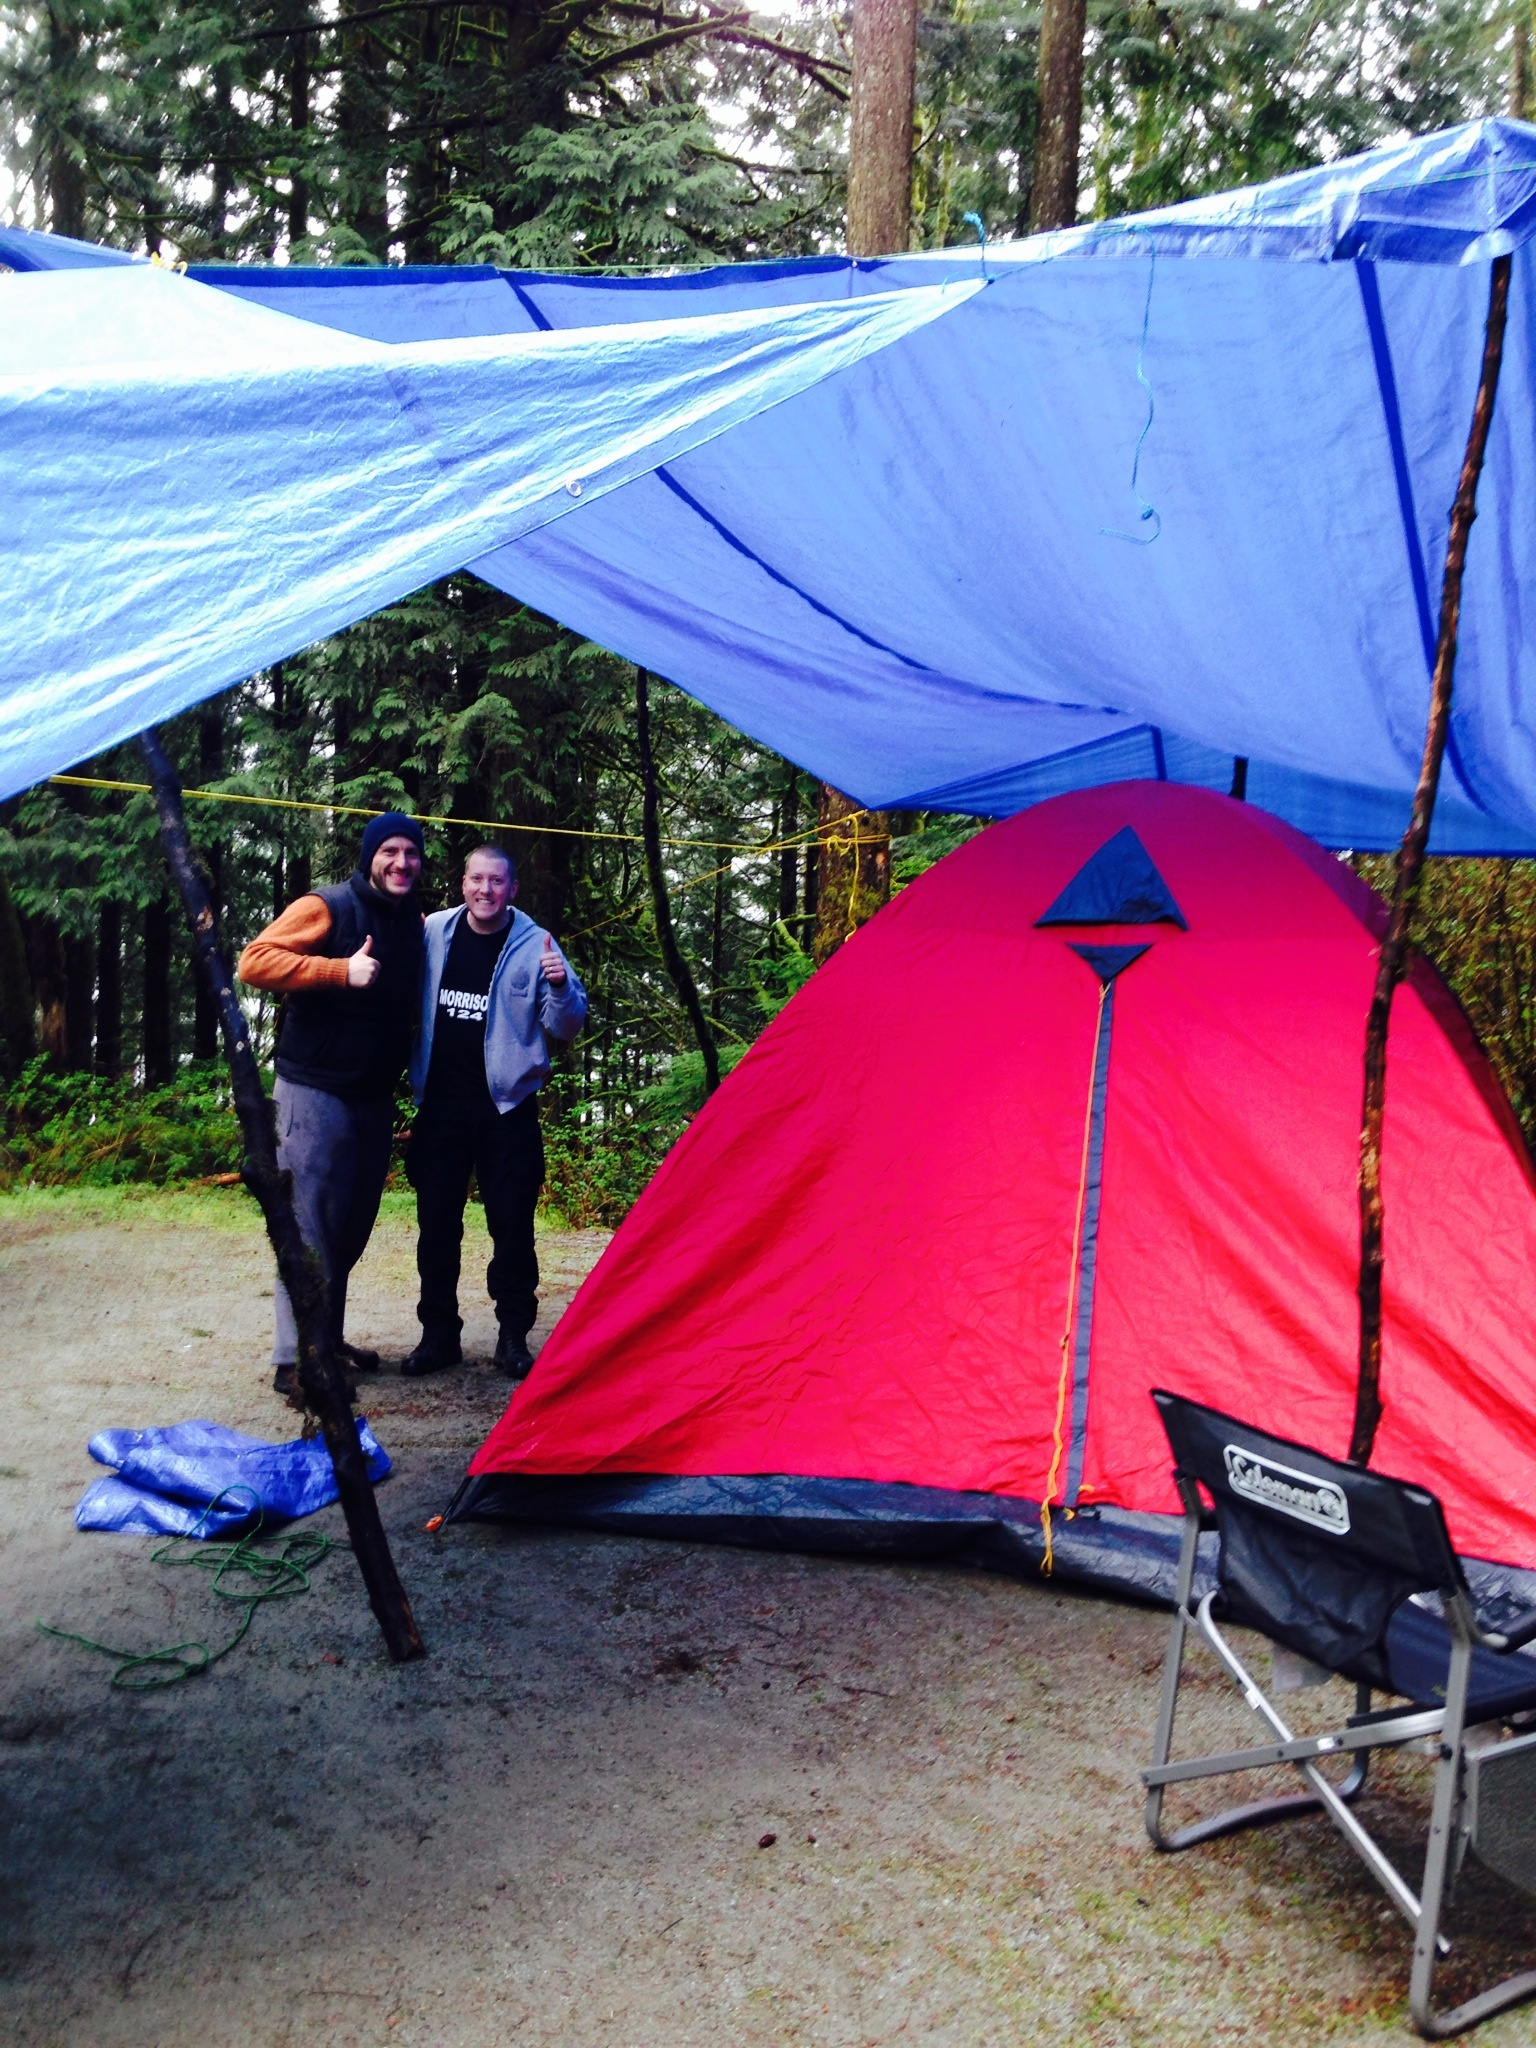 Adventures in Waterproofing for Camping in British Columbia